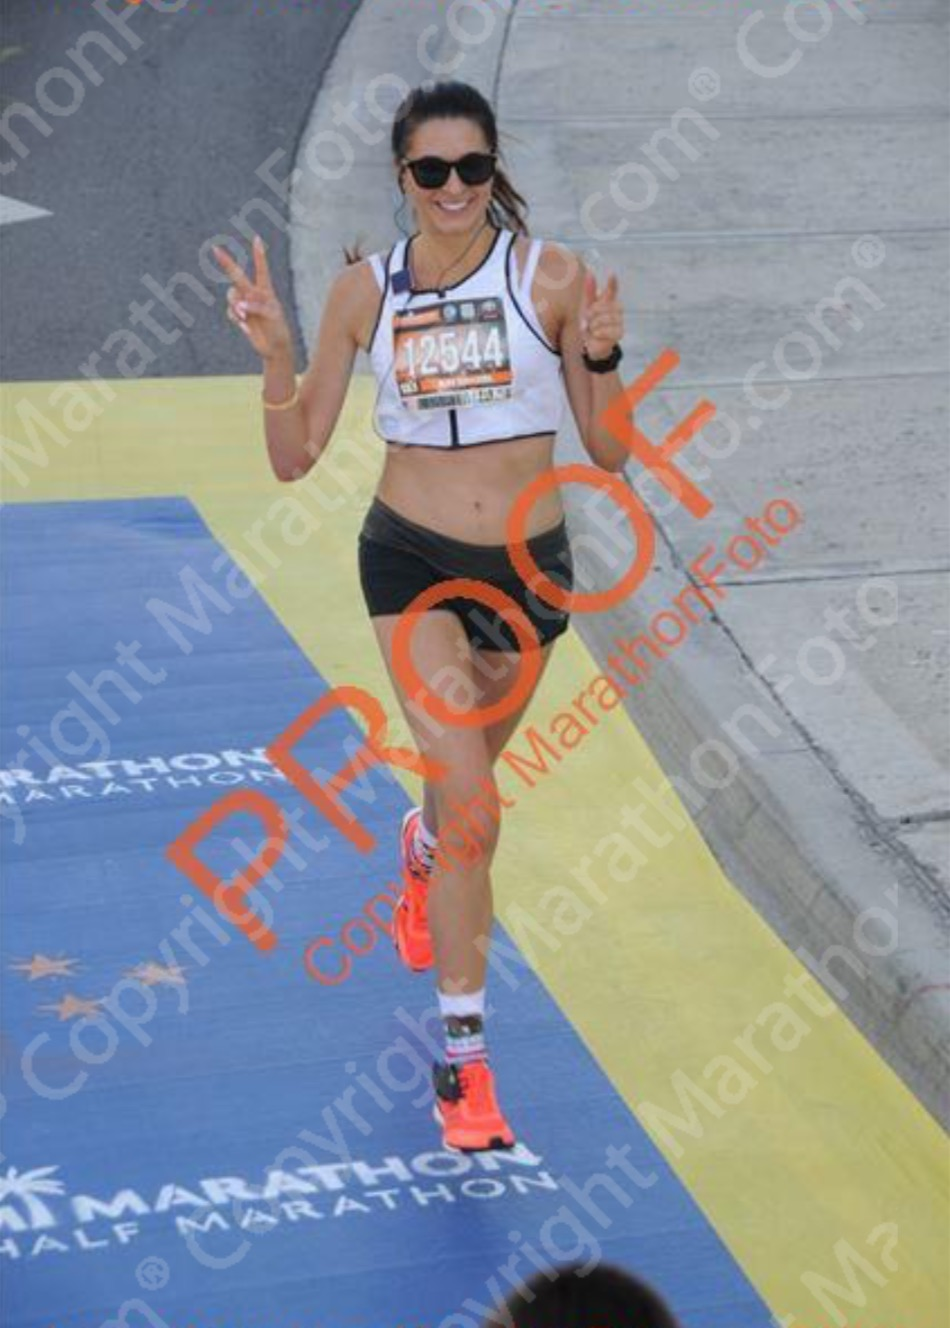 can these race photogs come with me to every race- they caught air in every photo.